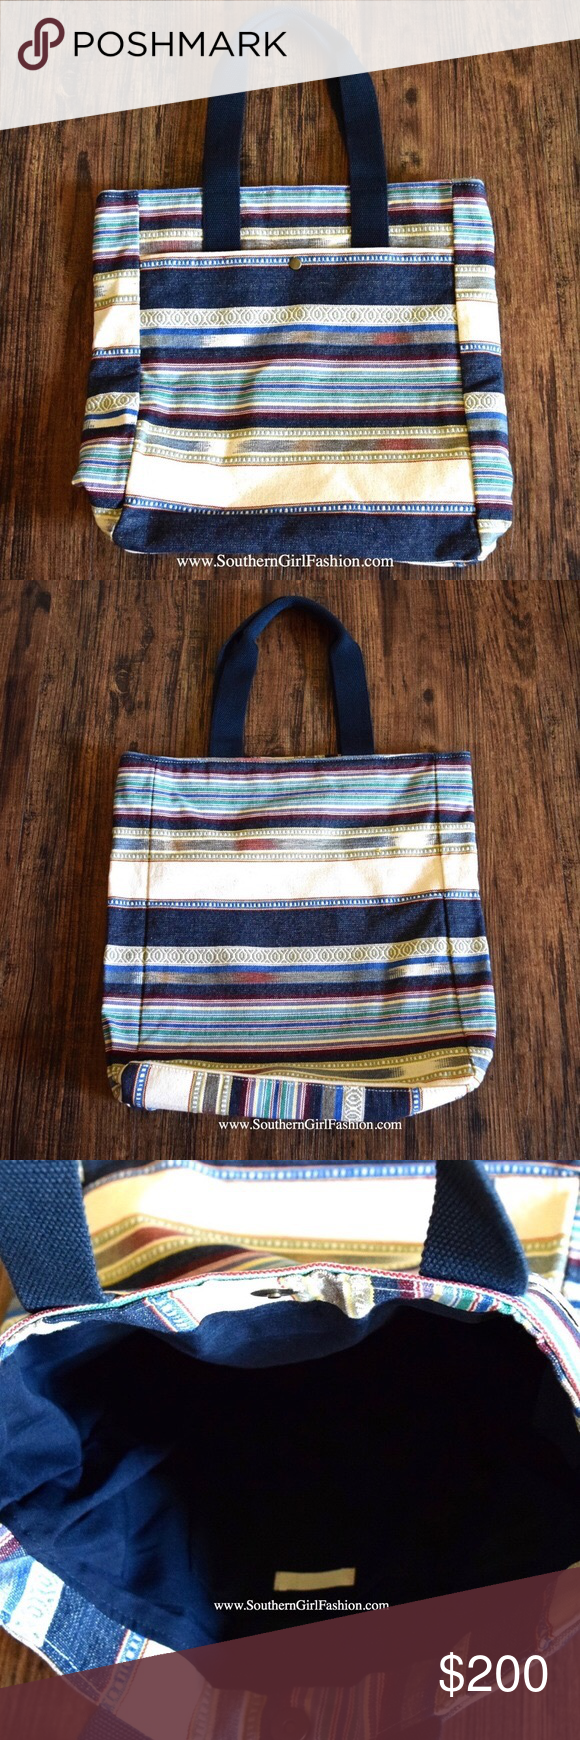 82f7215b0db7 STRIPED TOTE Bohemian Big Book Bag Large Carryall One Size. New in  packaging. •